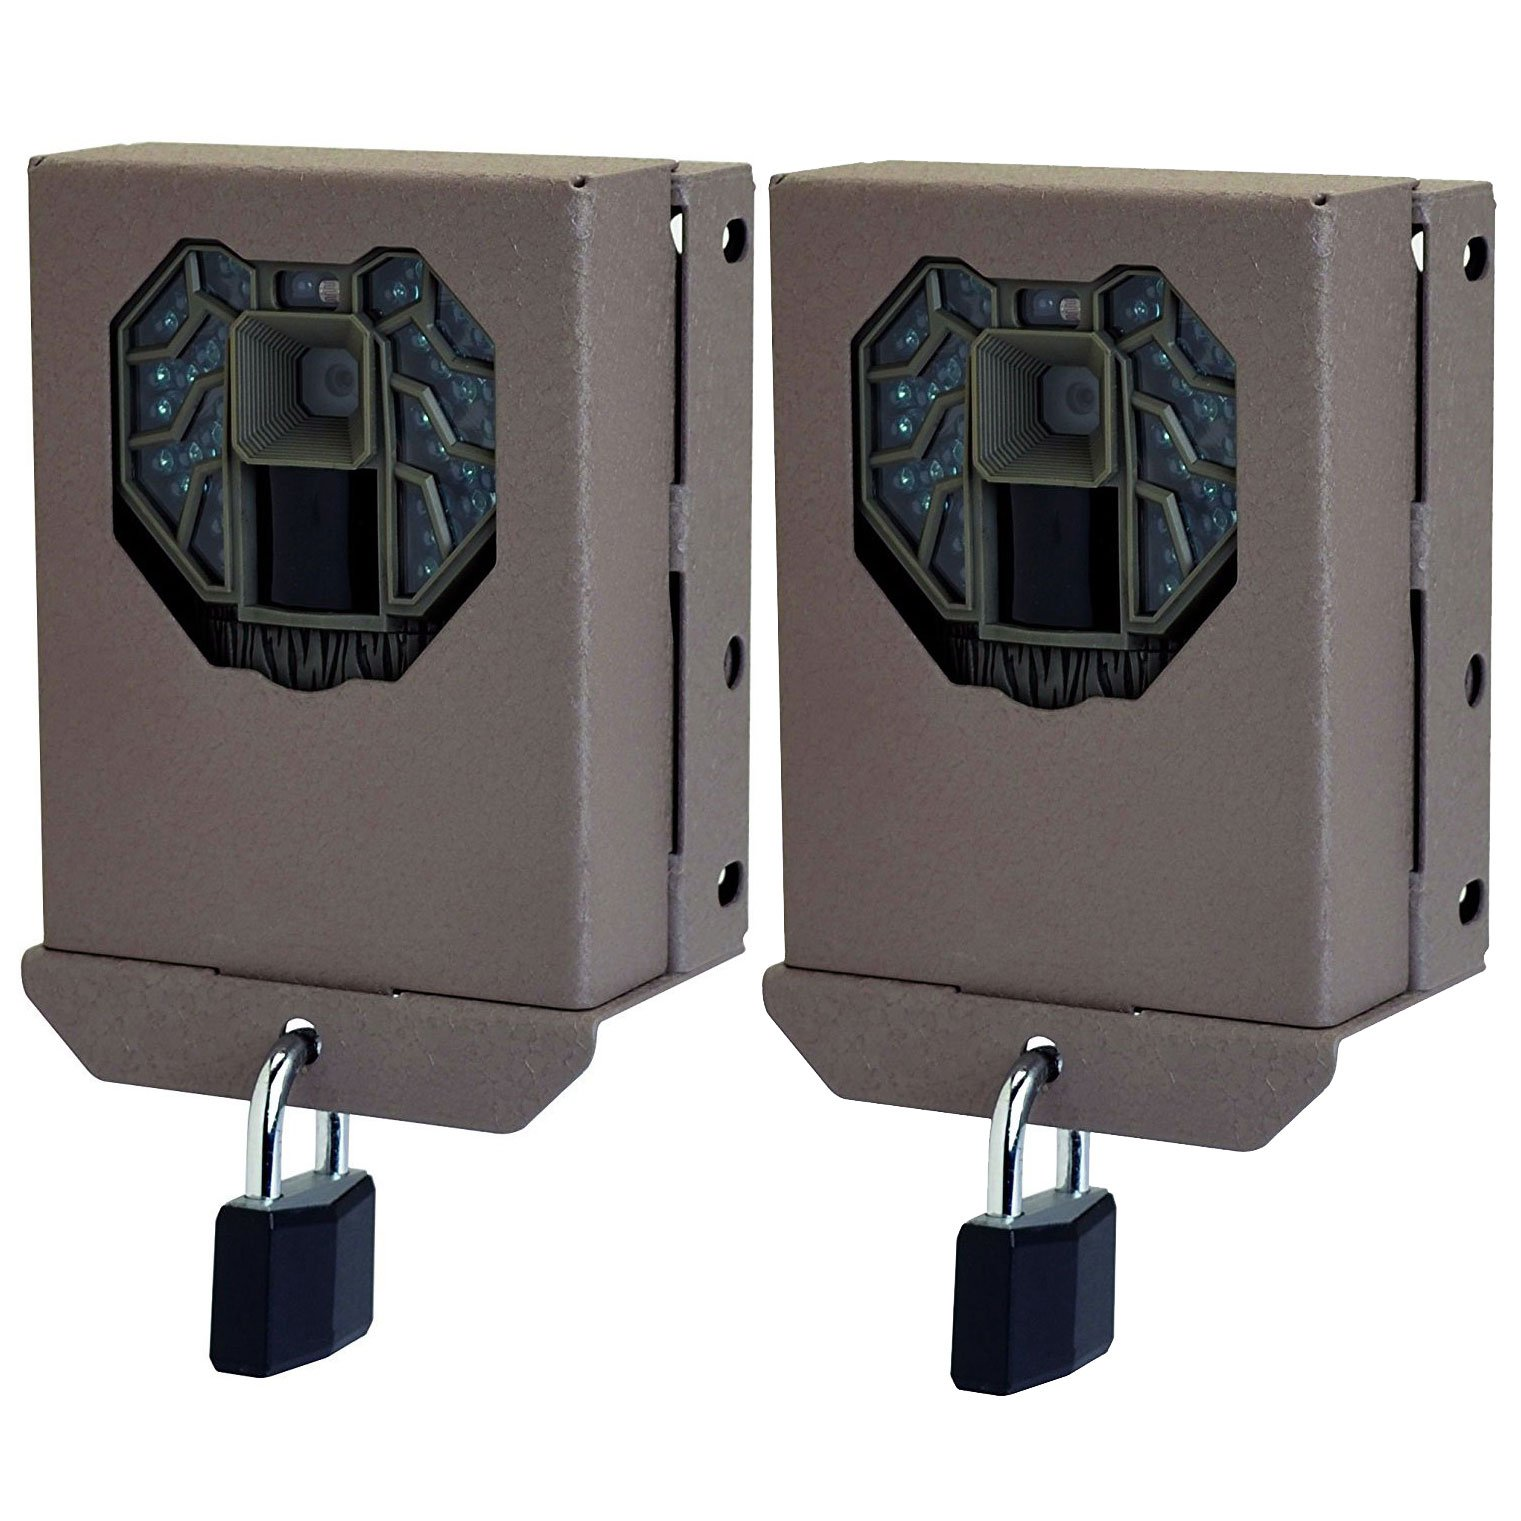 Stealth Cam Steel Security Trail Game Camera Bear Box for G Pro Series (2 Pack)